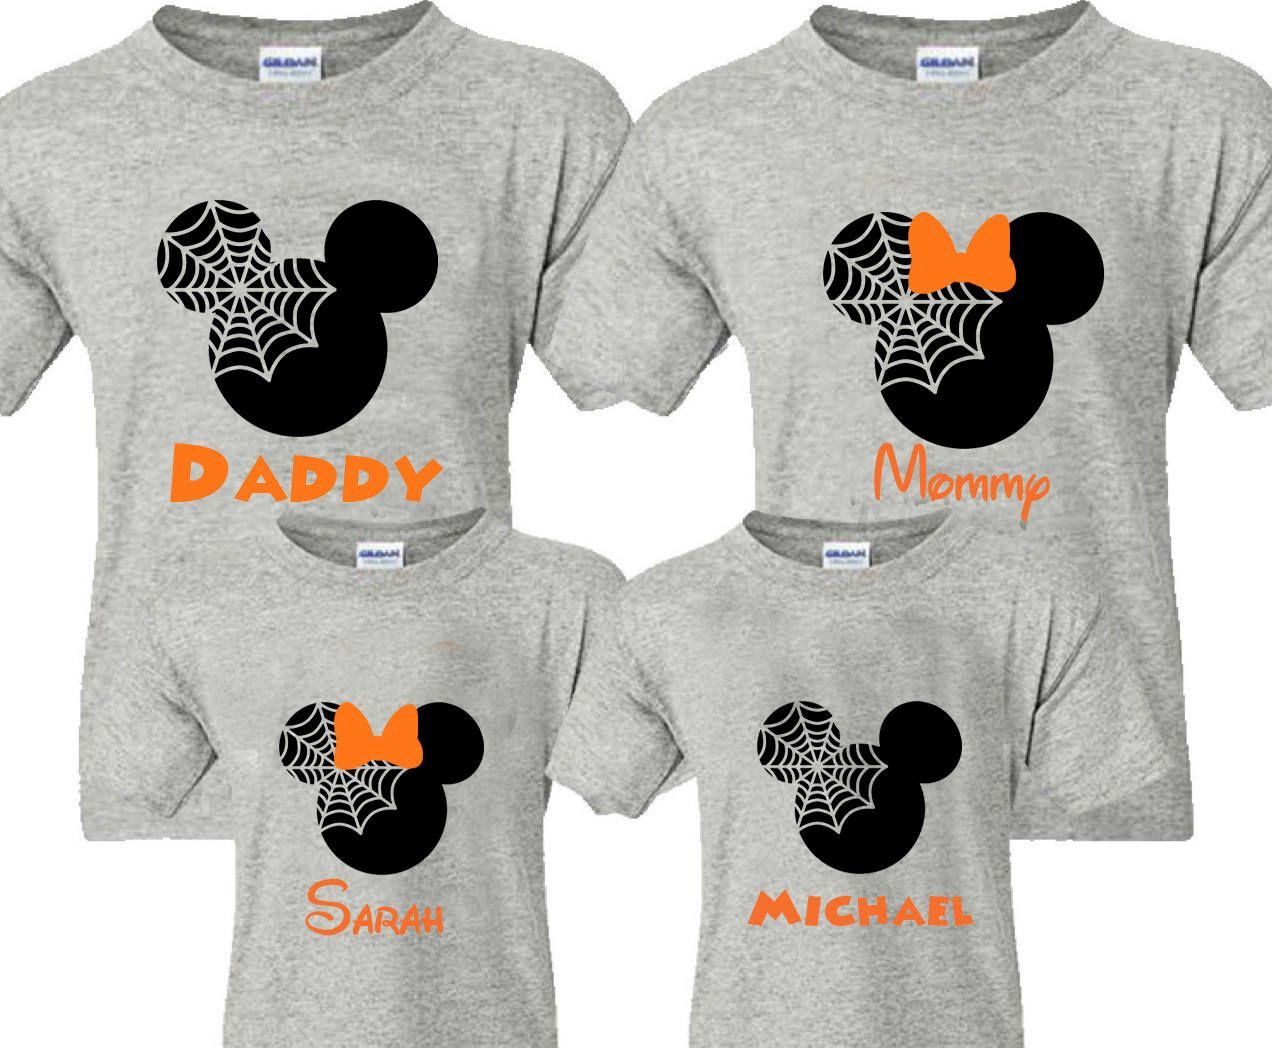 Disney Halloween Shirt Ideas.Family Disney World Halloween Shirts Matching Shirts